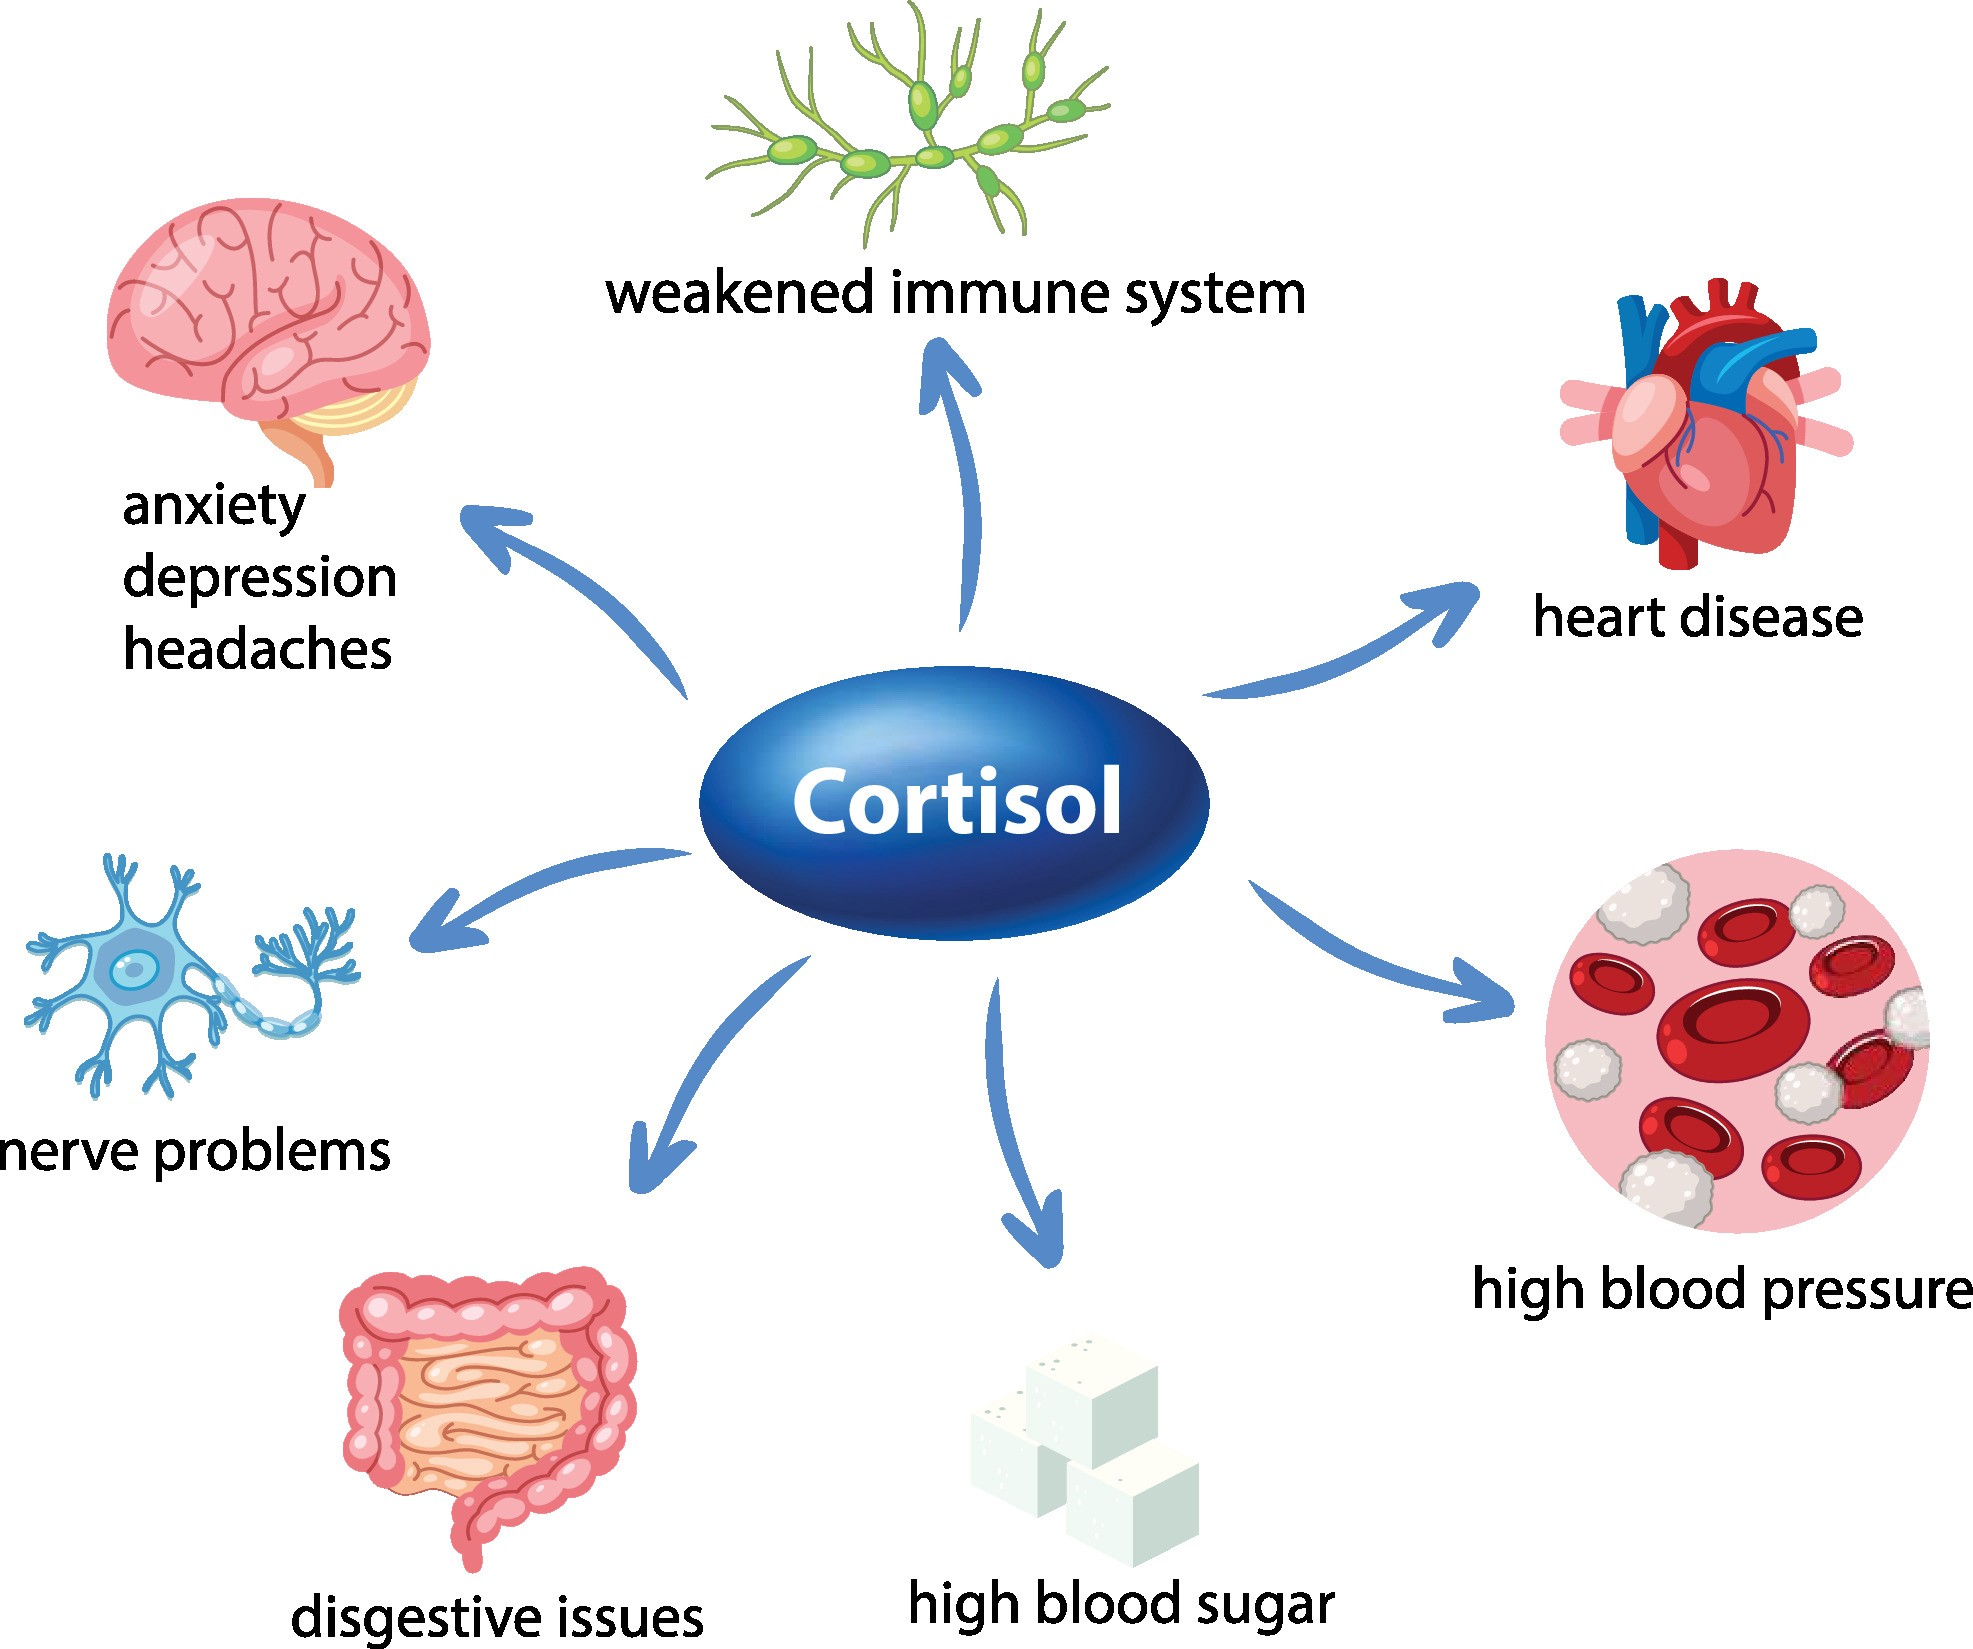 The role of the stress hormone cortisol in the body diagram illustration